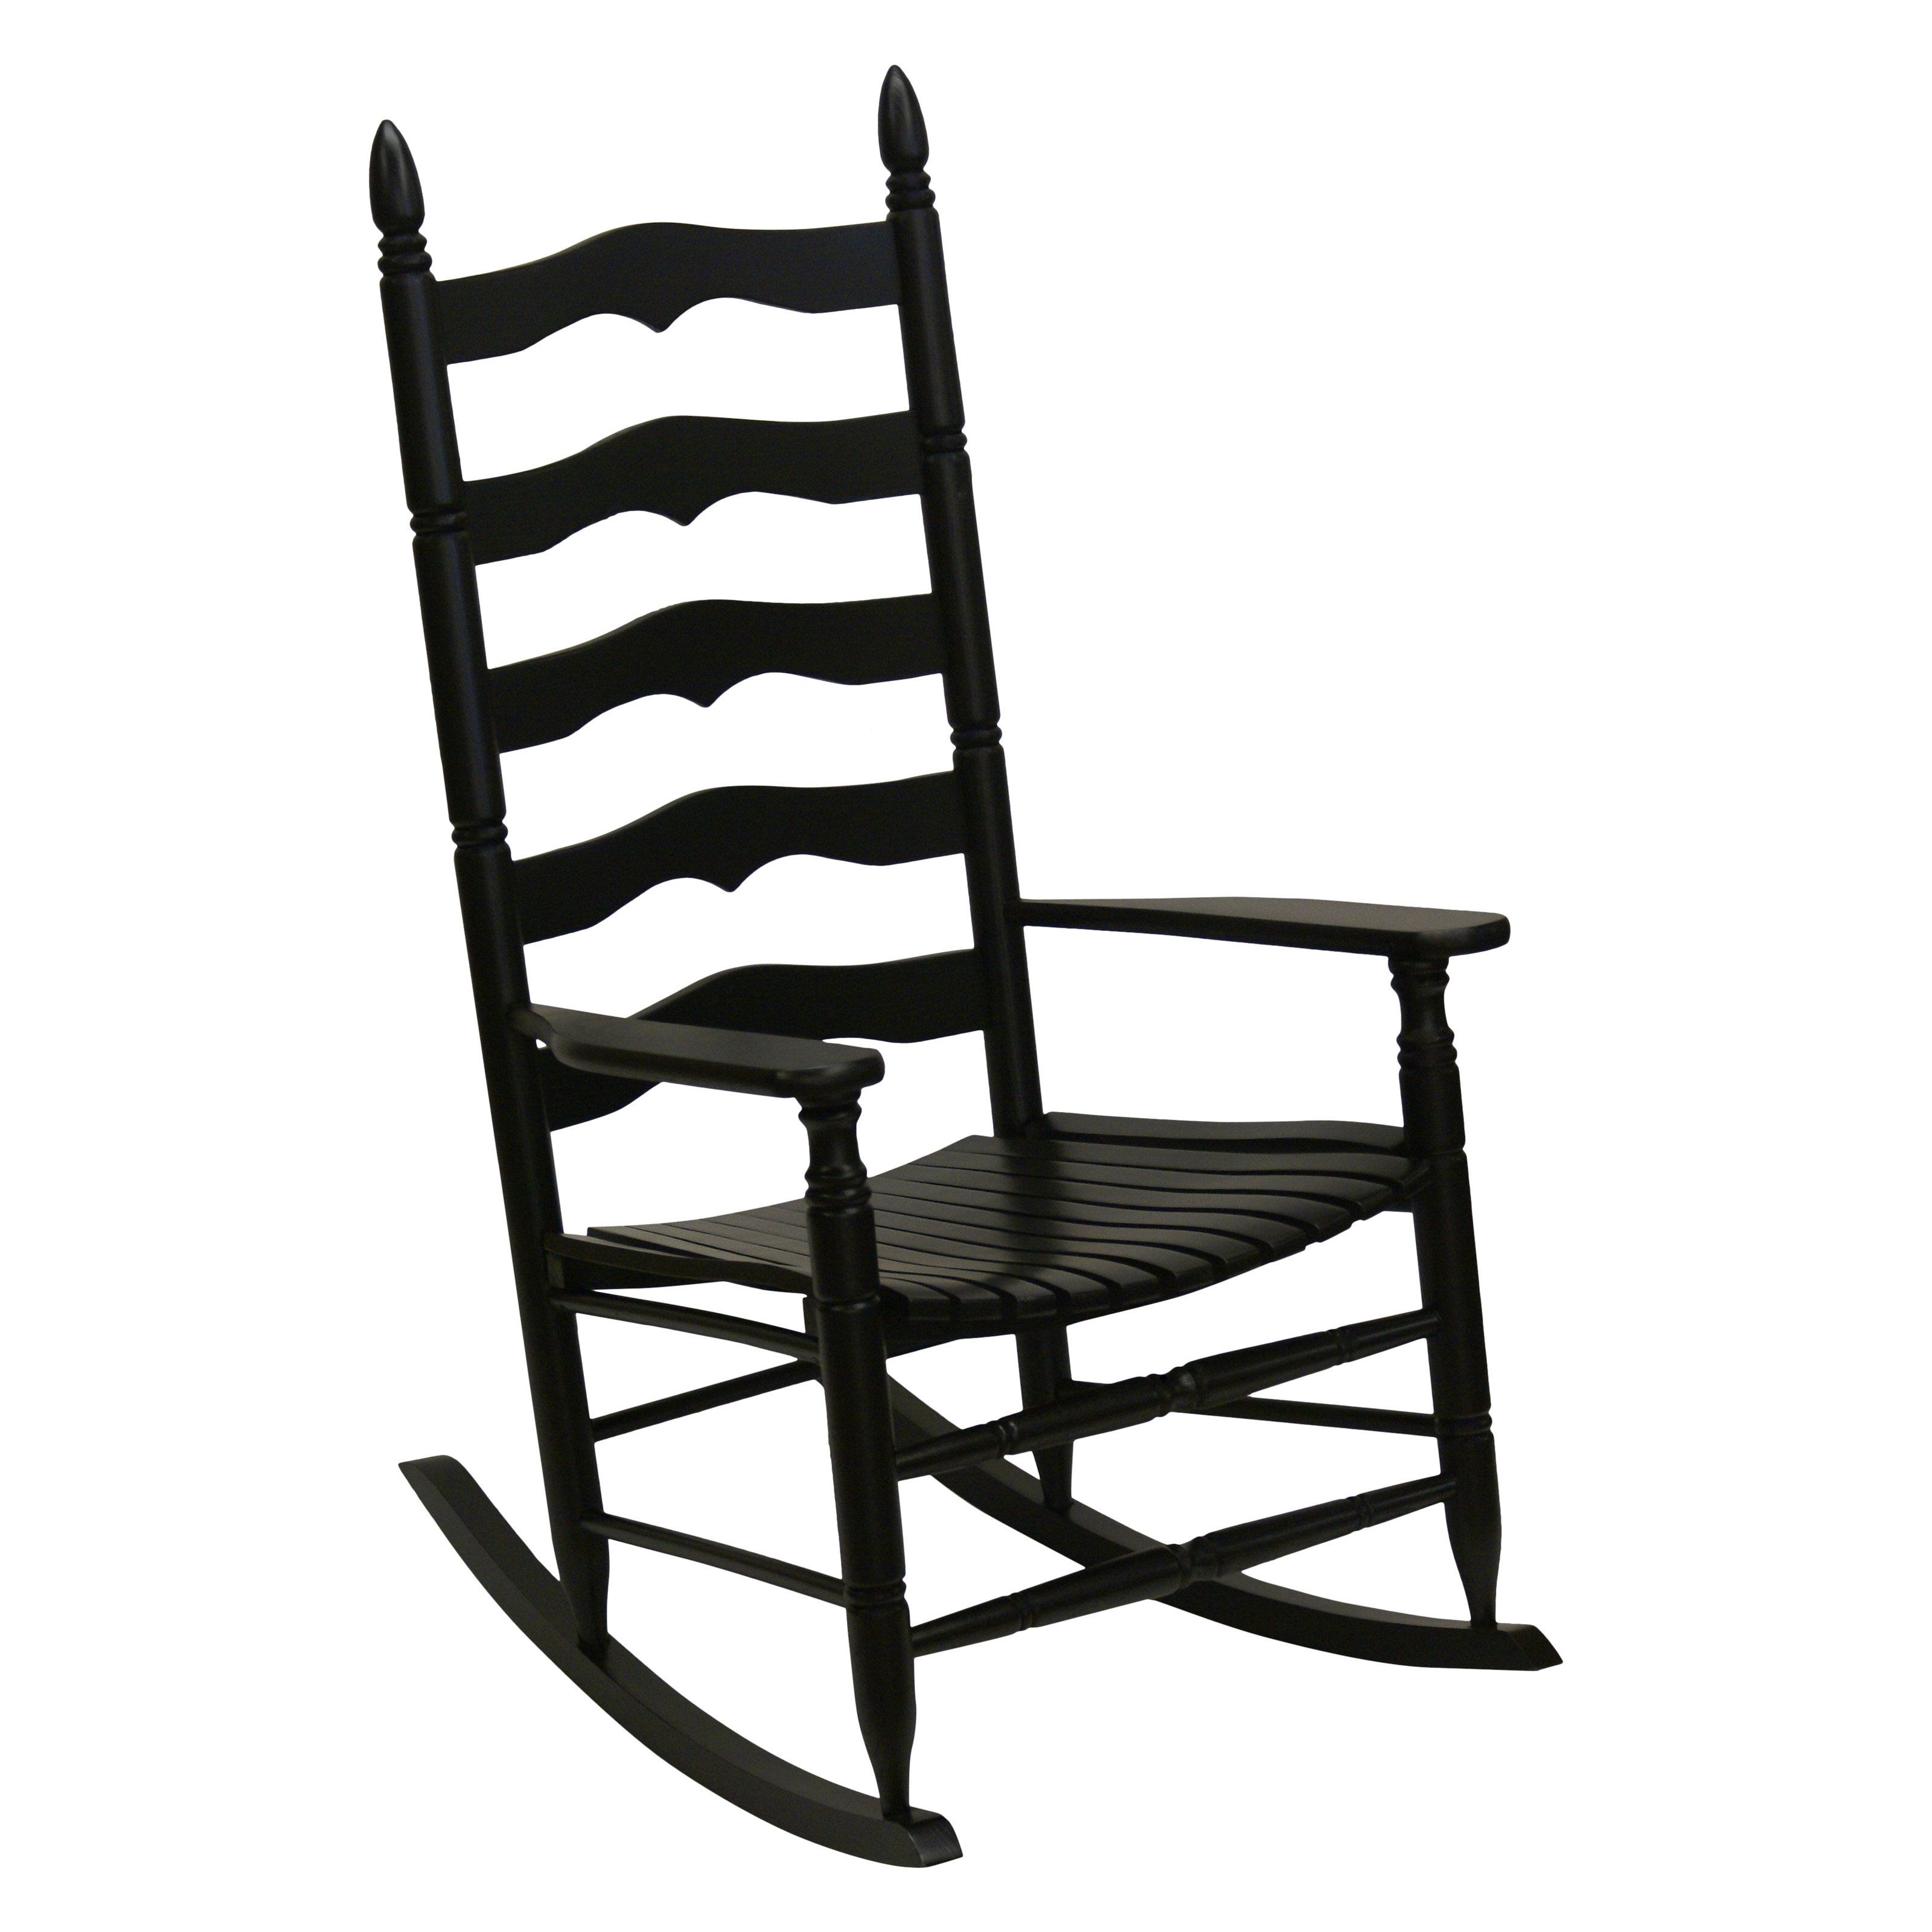 Patio Rocker Chairs Details About Hinkle Farm House Ladder Back Wood Patio Rocking Chair